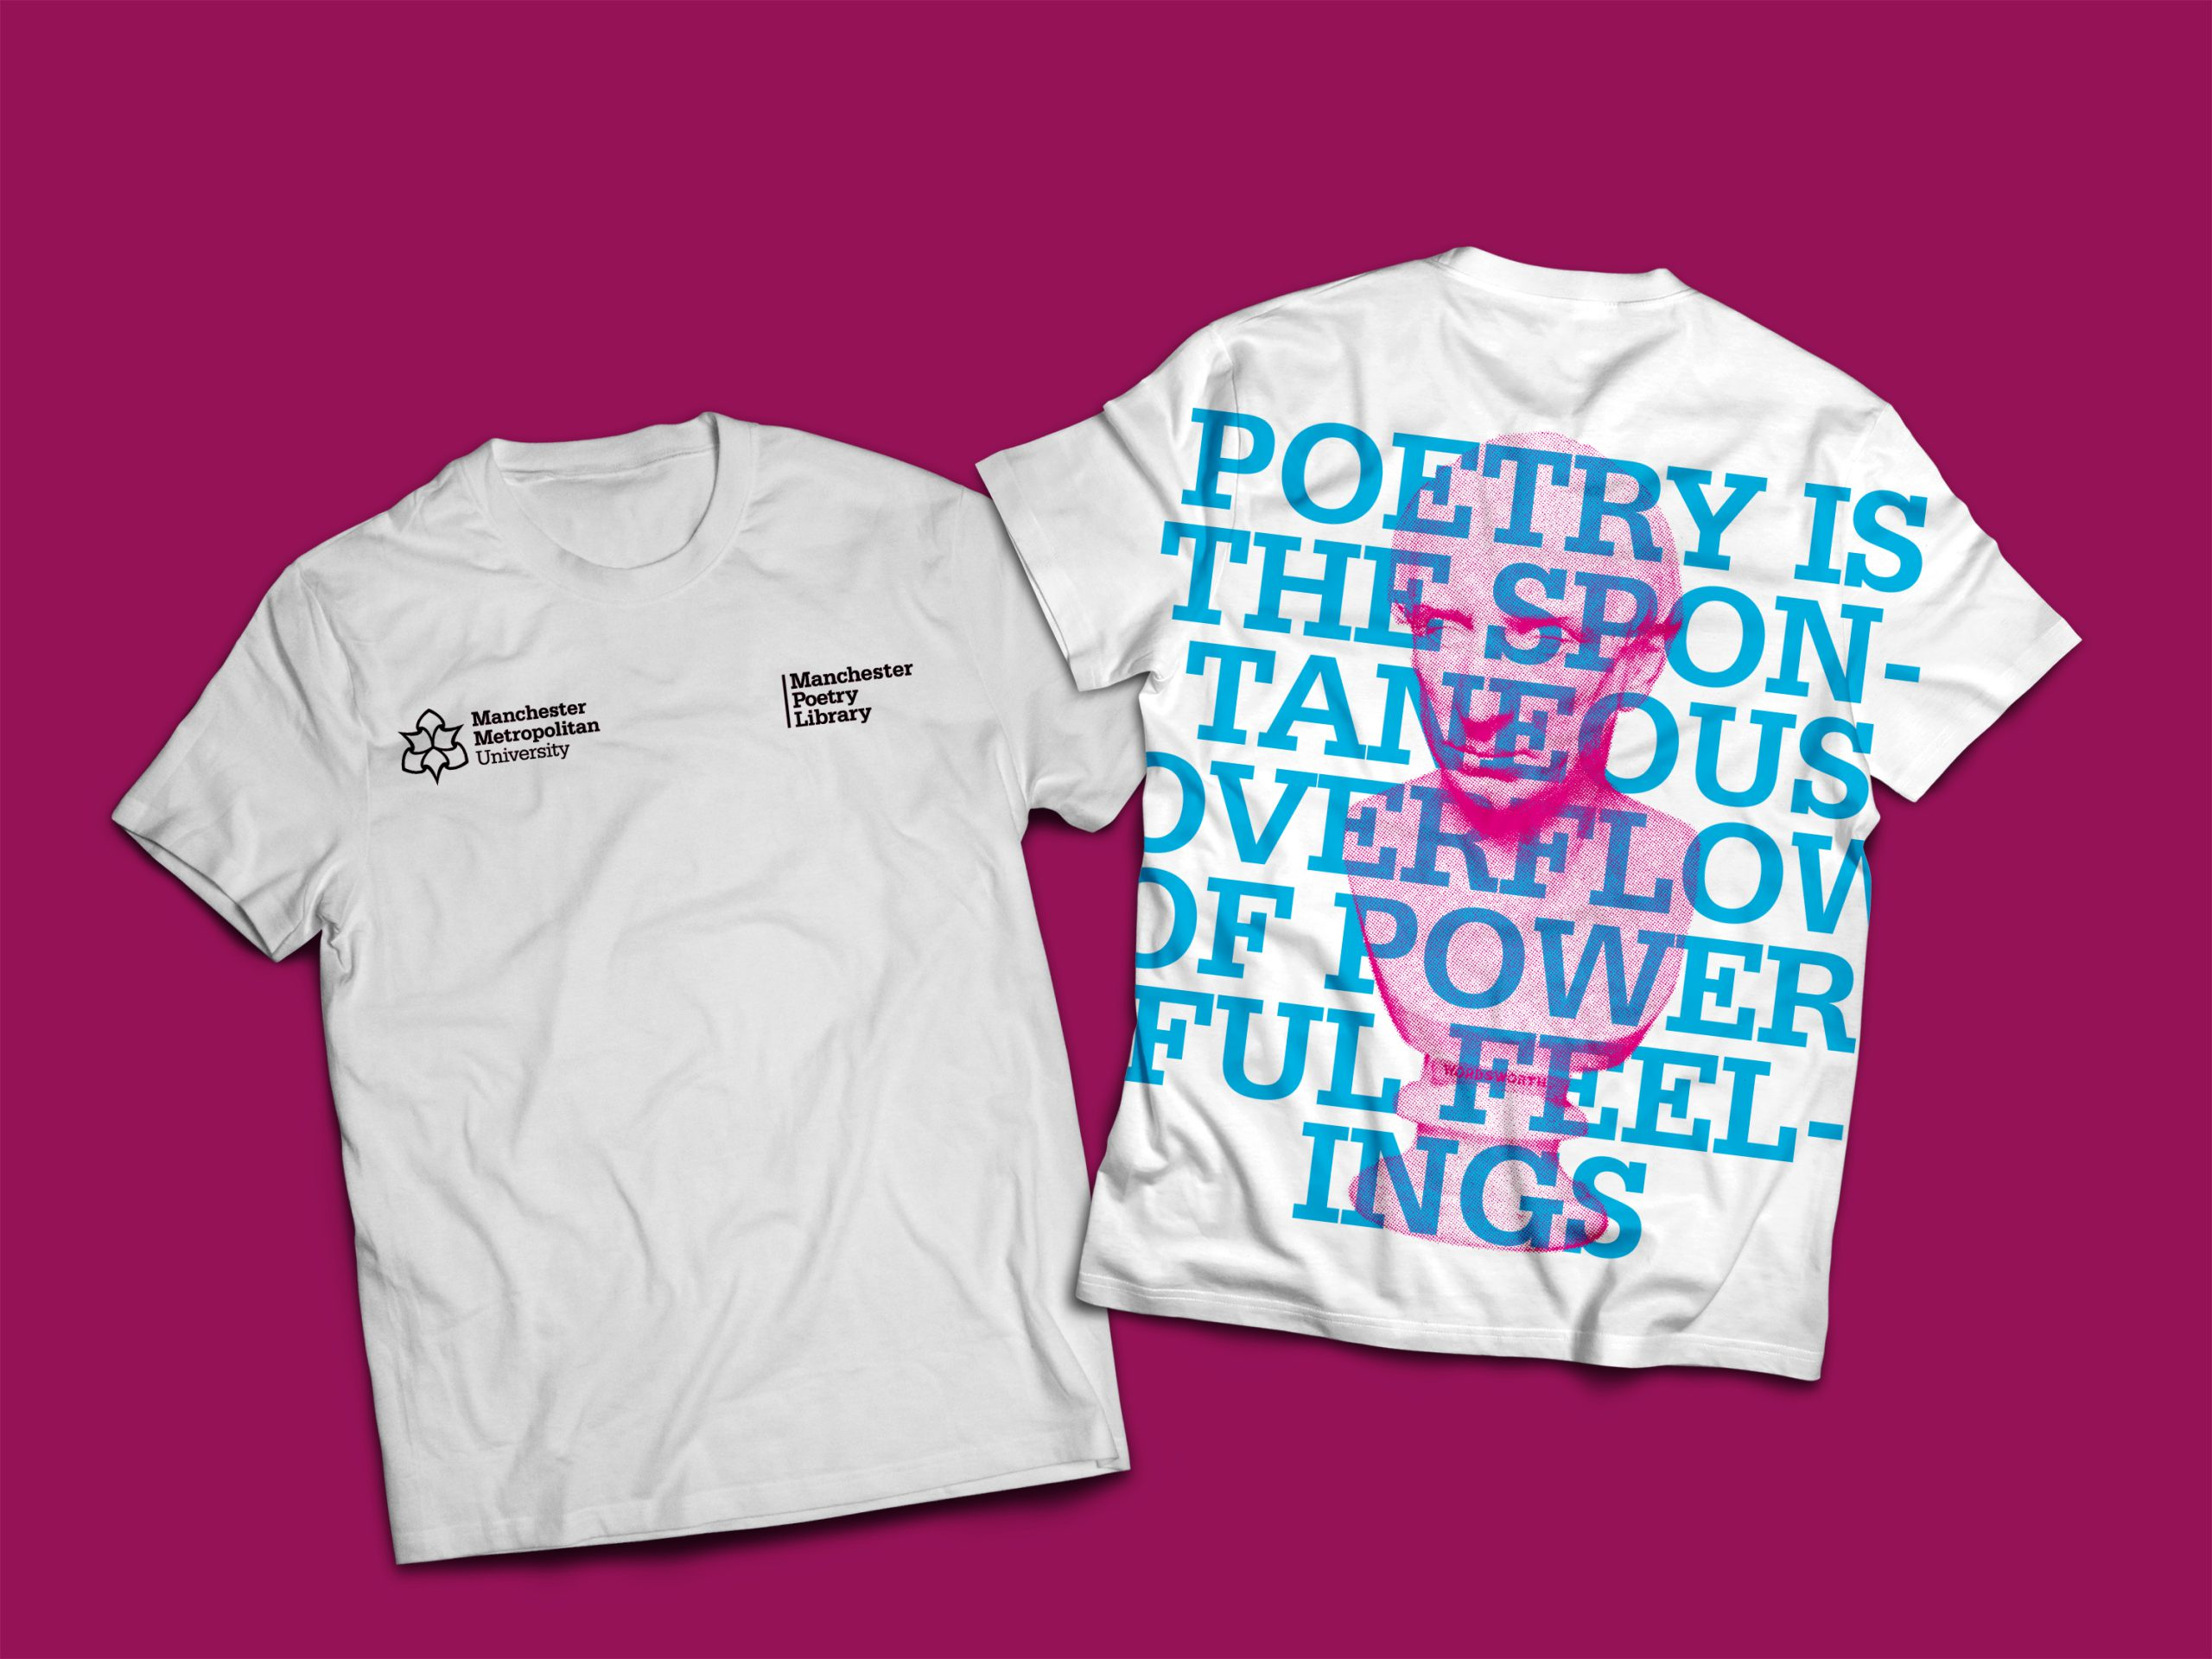 White tshirt front and back on pink background with print of pink bust of wordsworth and the words 'poetry is the spontaneous overflow of powerful feelings'